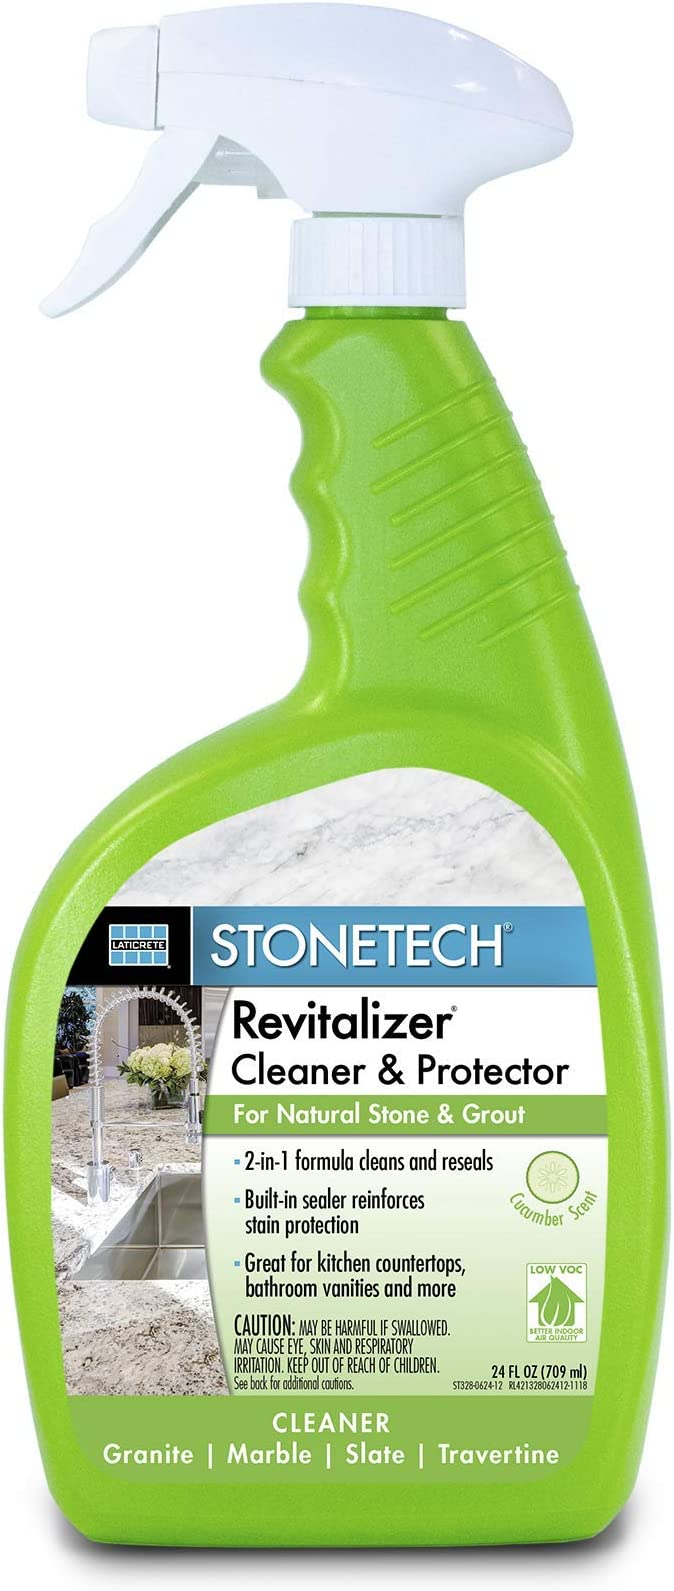 Amazon Com Stonetech Revitalizer Cleaner Protector For Tile